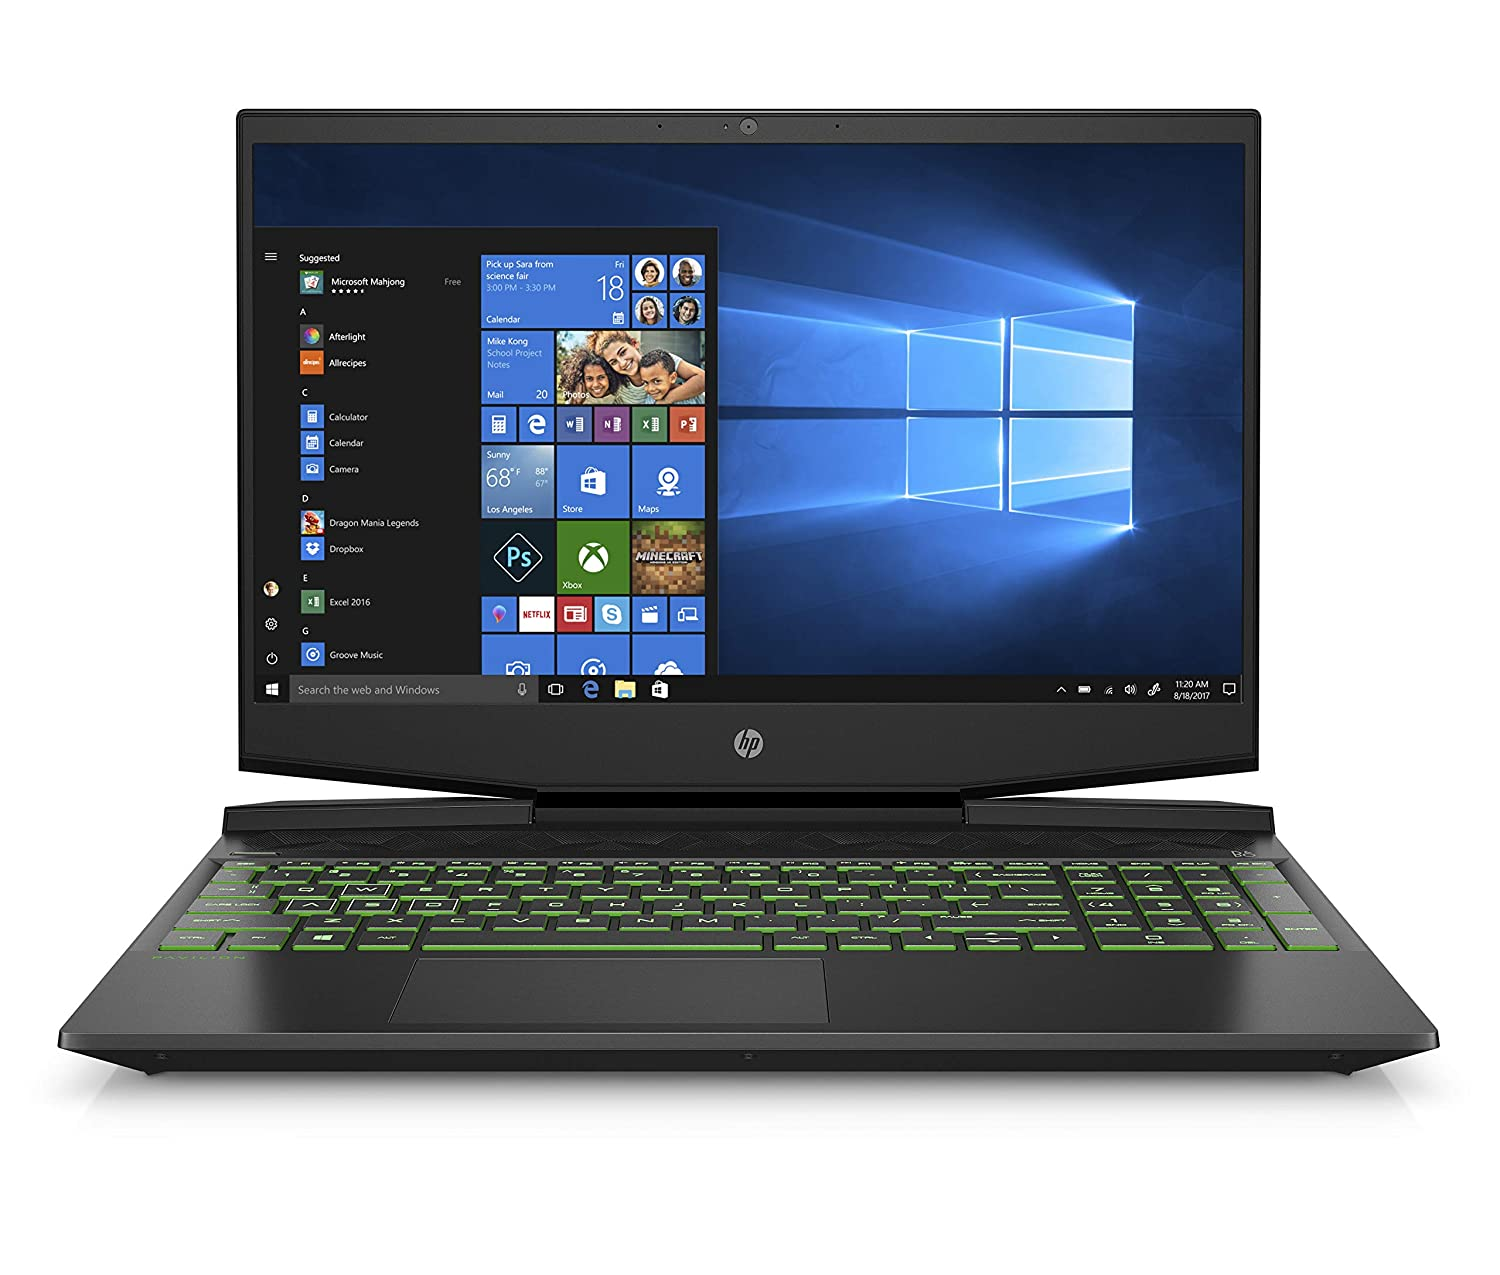 HP Pavilion Gaming 15-Inch Laptop, Intel Core i5-9300H, NVIDIA GeForce GTX 1650, 12GB RAM, 512GB SSD, Windows 10 (15-dk0042nr, Black)